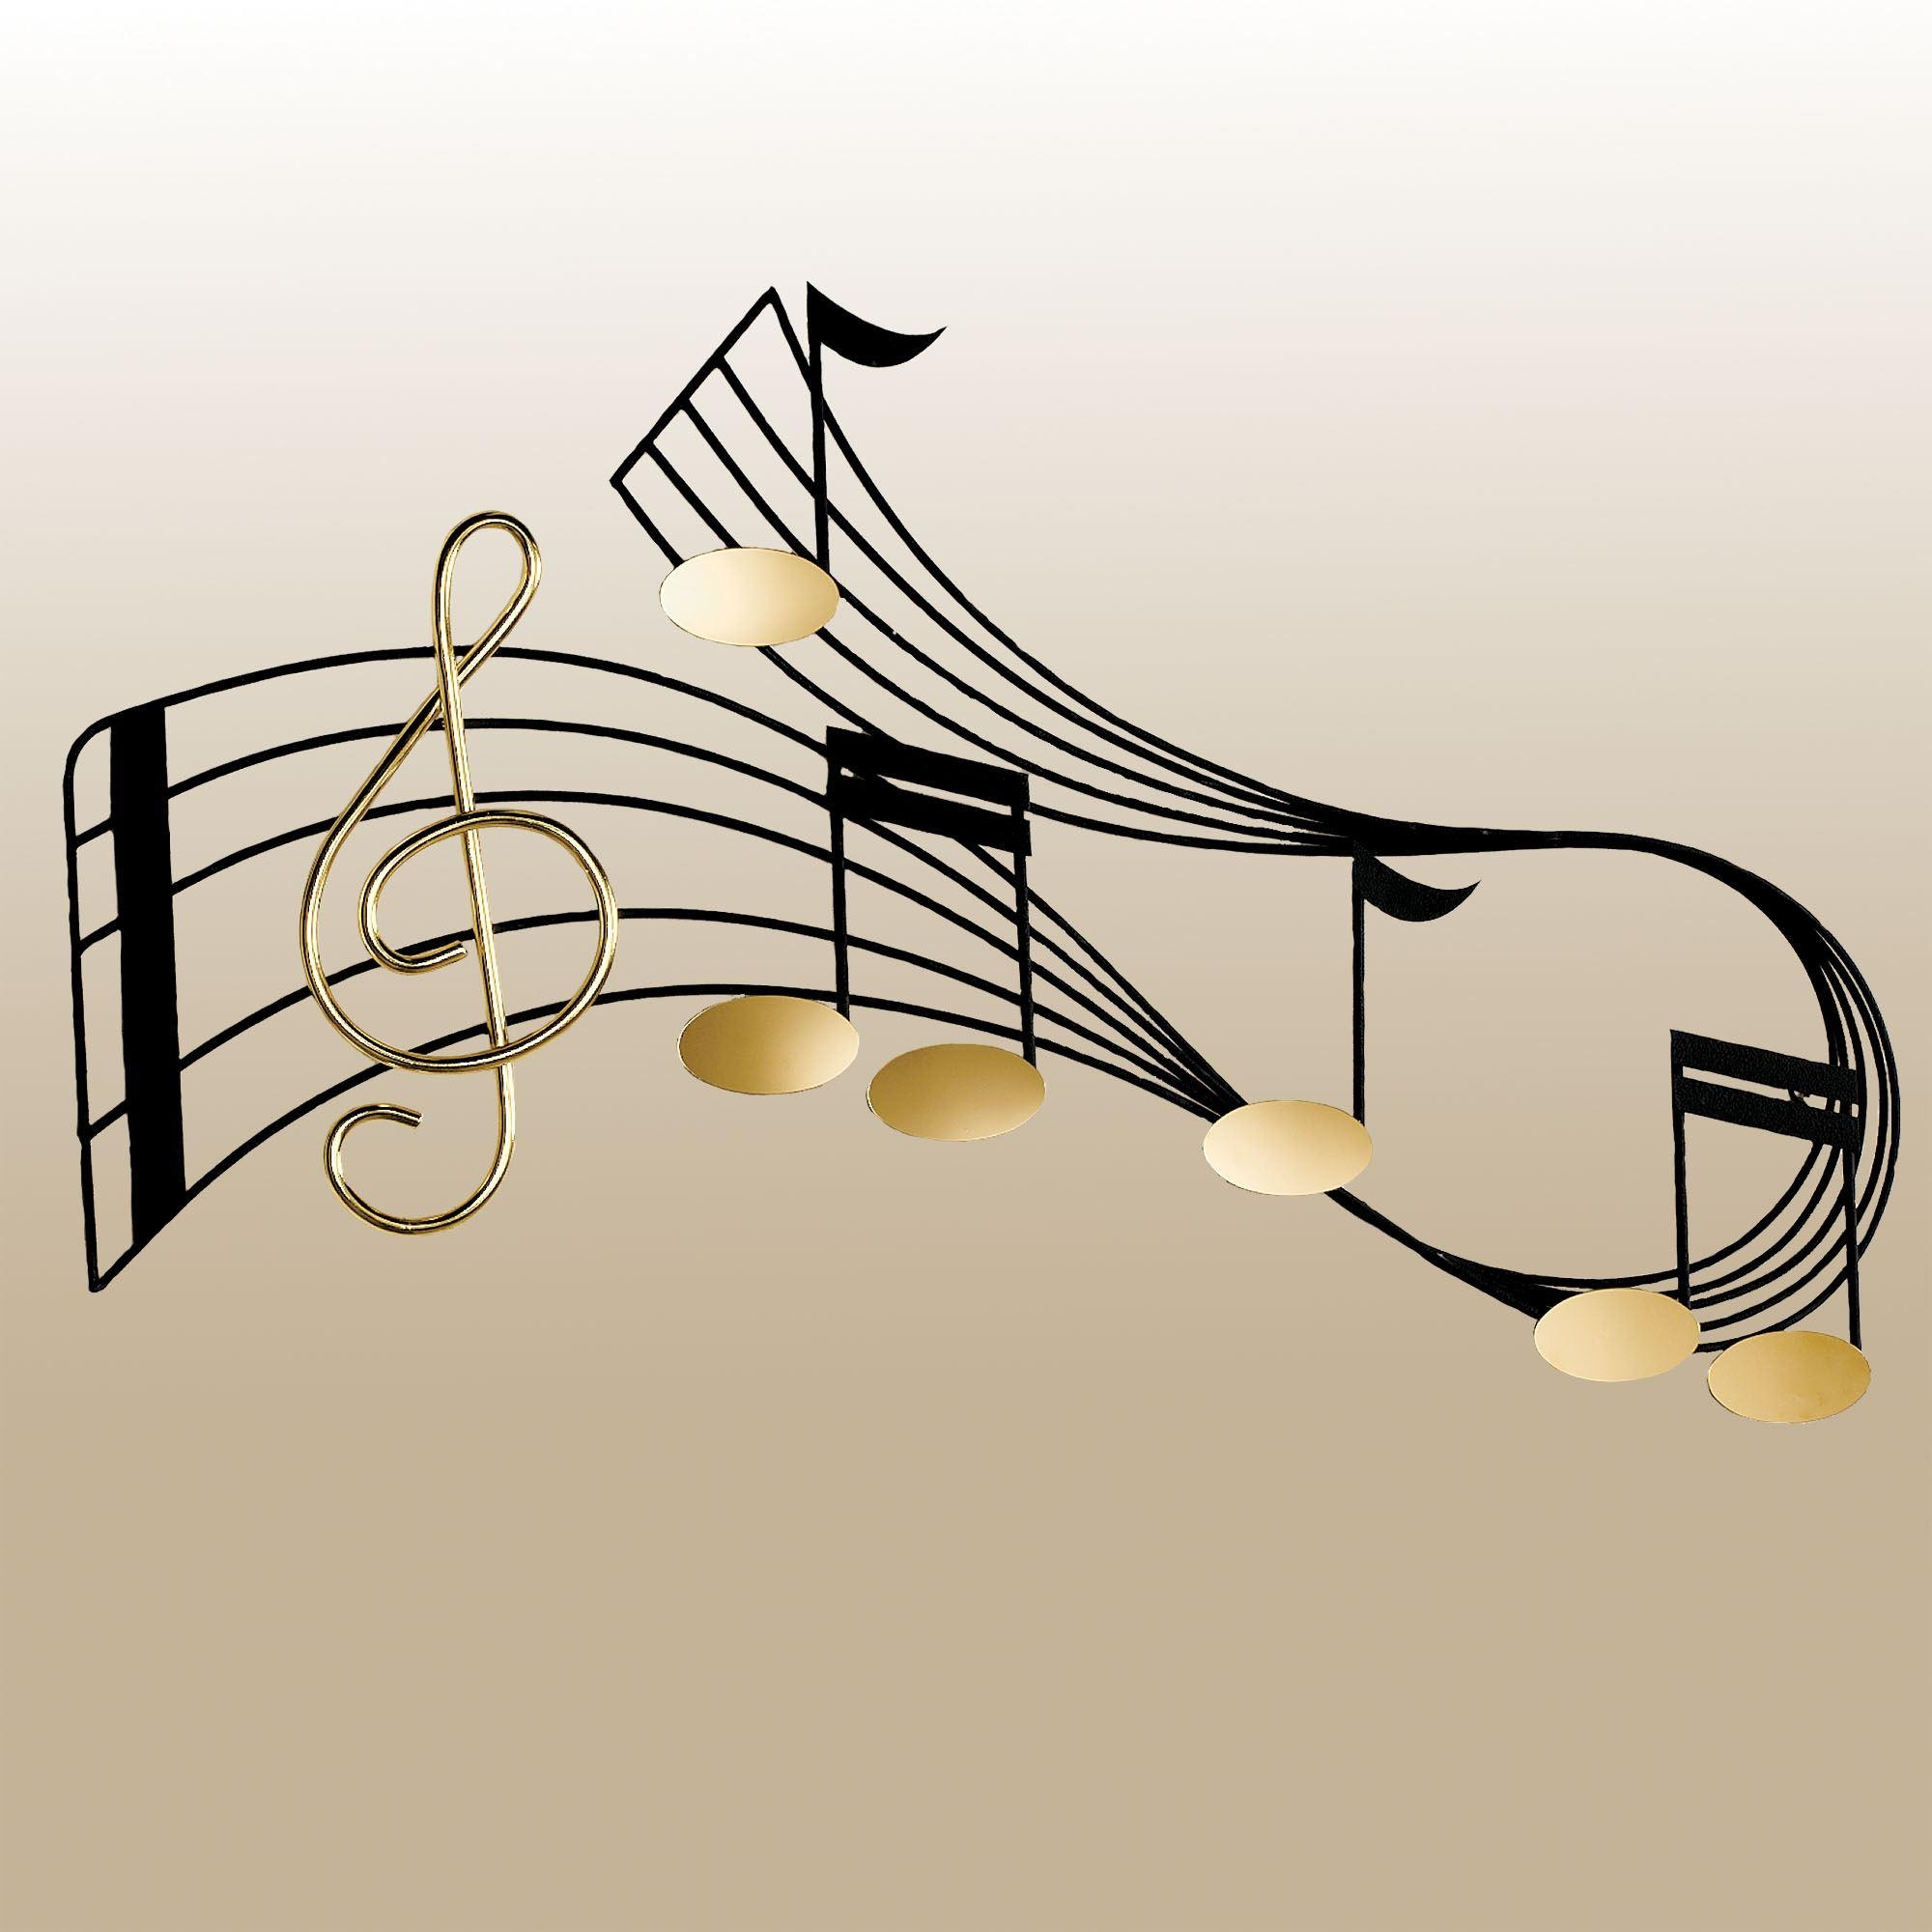 Musical Wall Art Metal 20 Inspirations Music Metal Wall Art Wall Art Ideas